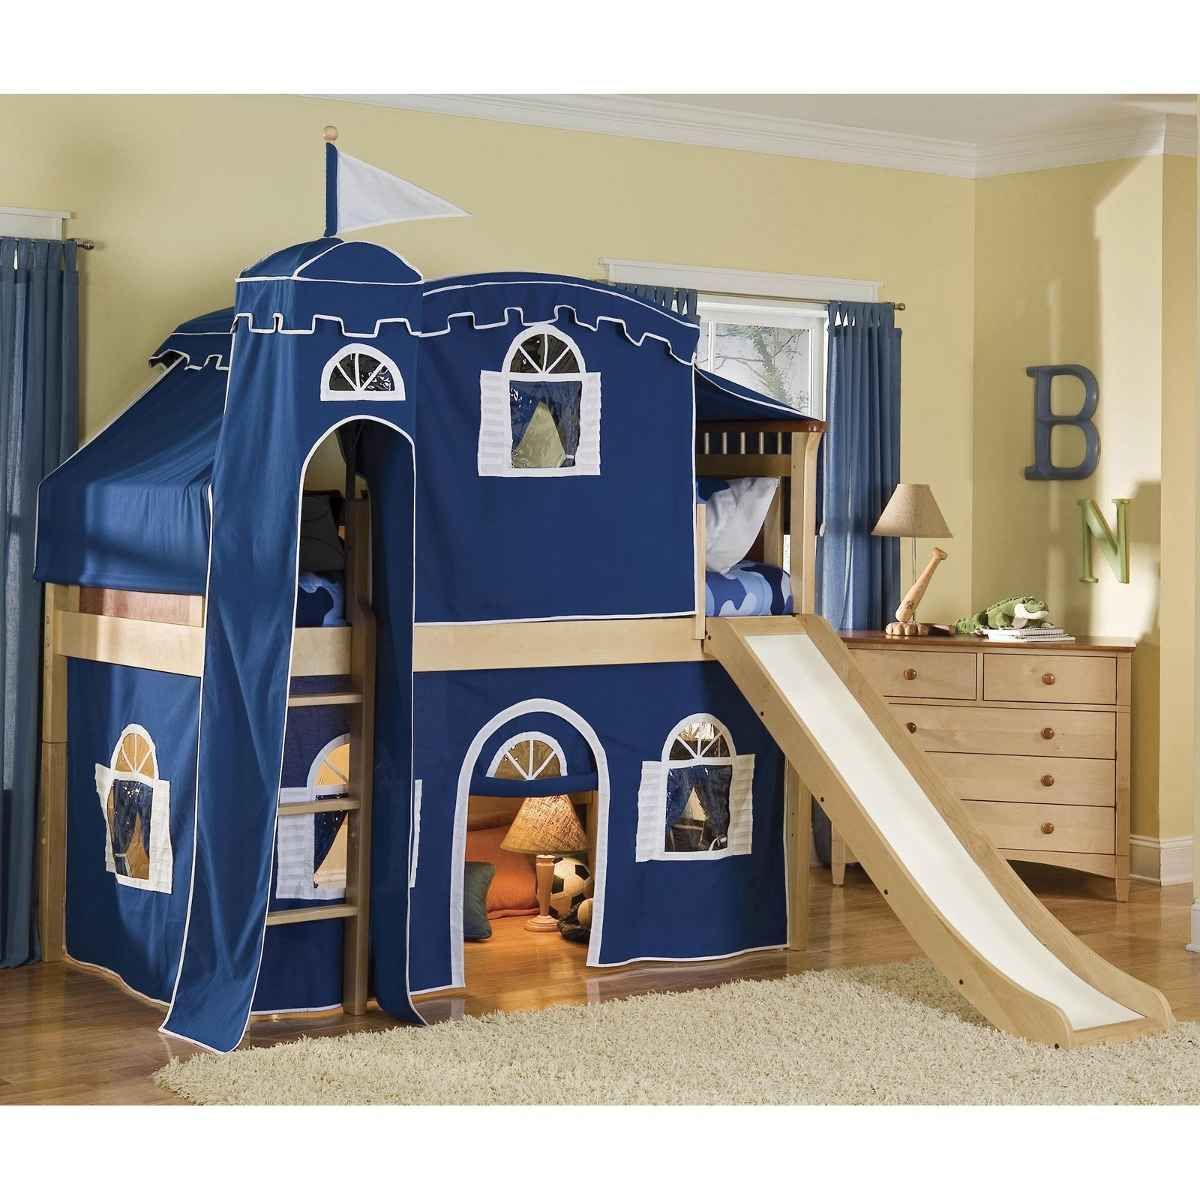 Bunk Bed Tents For Boys | Blue Tent Castle Bed for Children  sc 1 st  Pinterest & Bunk Bed Tents For Boys | Blue Tent Castle Bed for Children ...